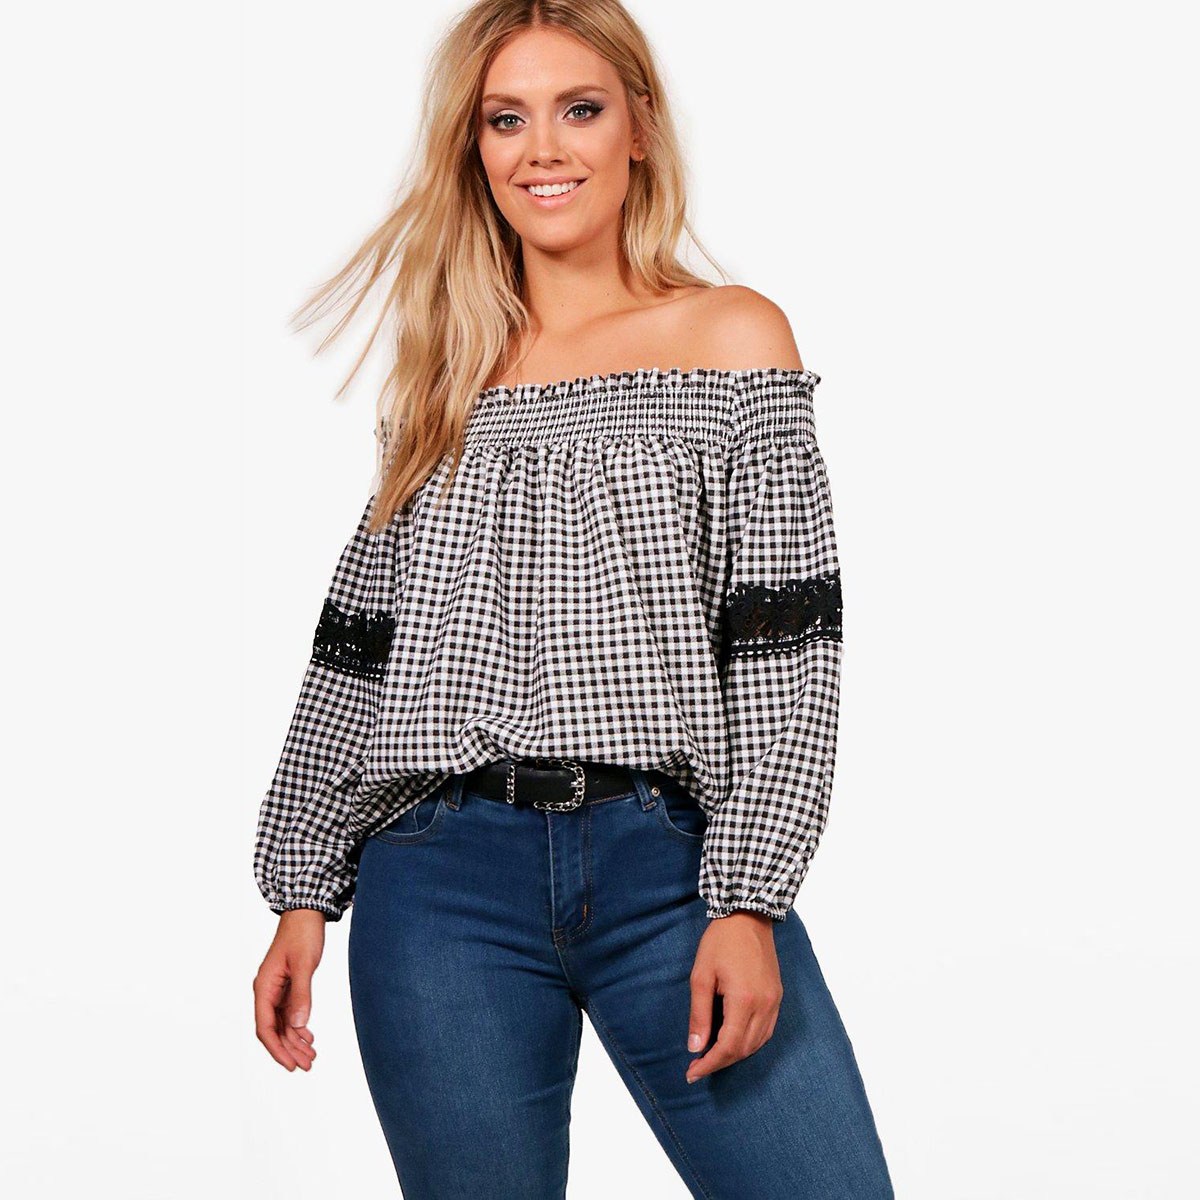 MCO 2018 Sexy Off Shoulder Plus Size Plaid Top Casual Lace Oversized Gingham Bardot Blouse Basic Big Women Clothing 5xl 6xl 7xl 1